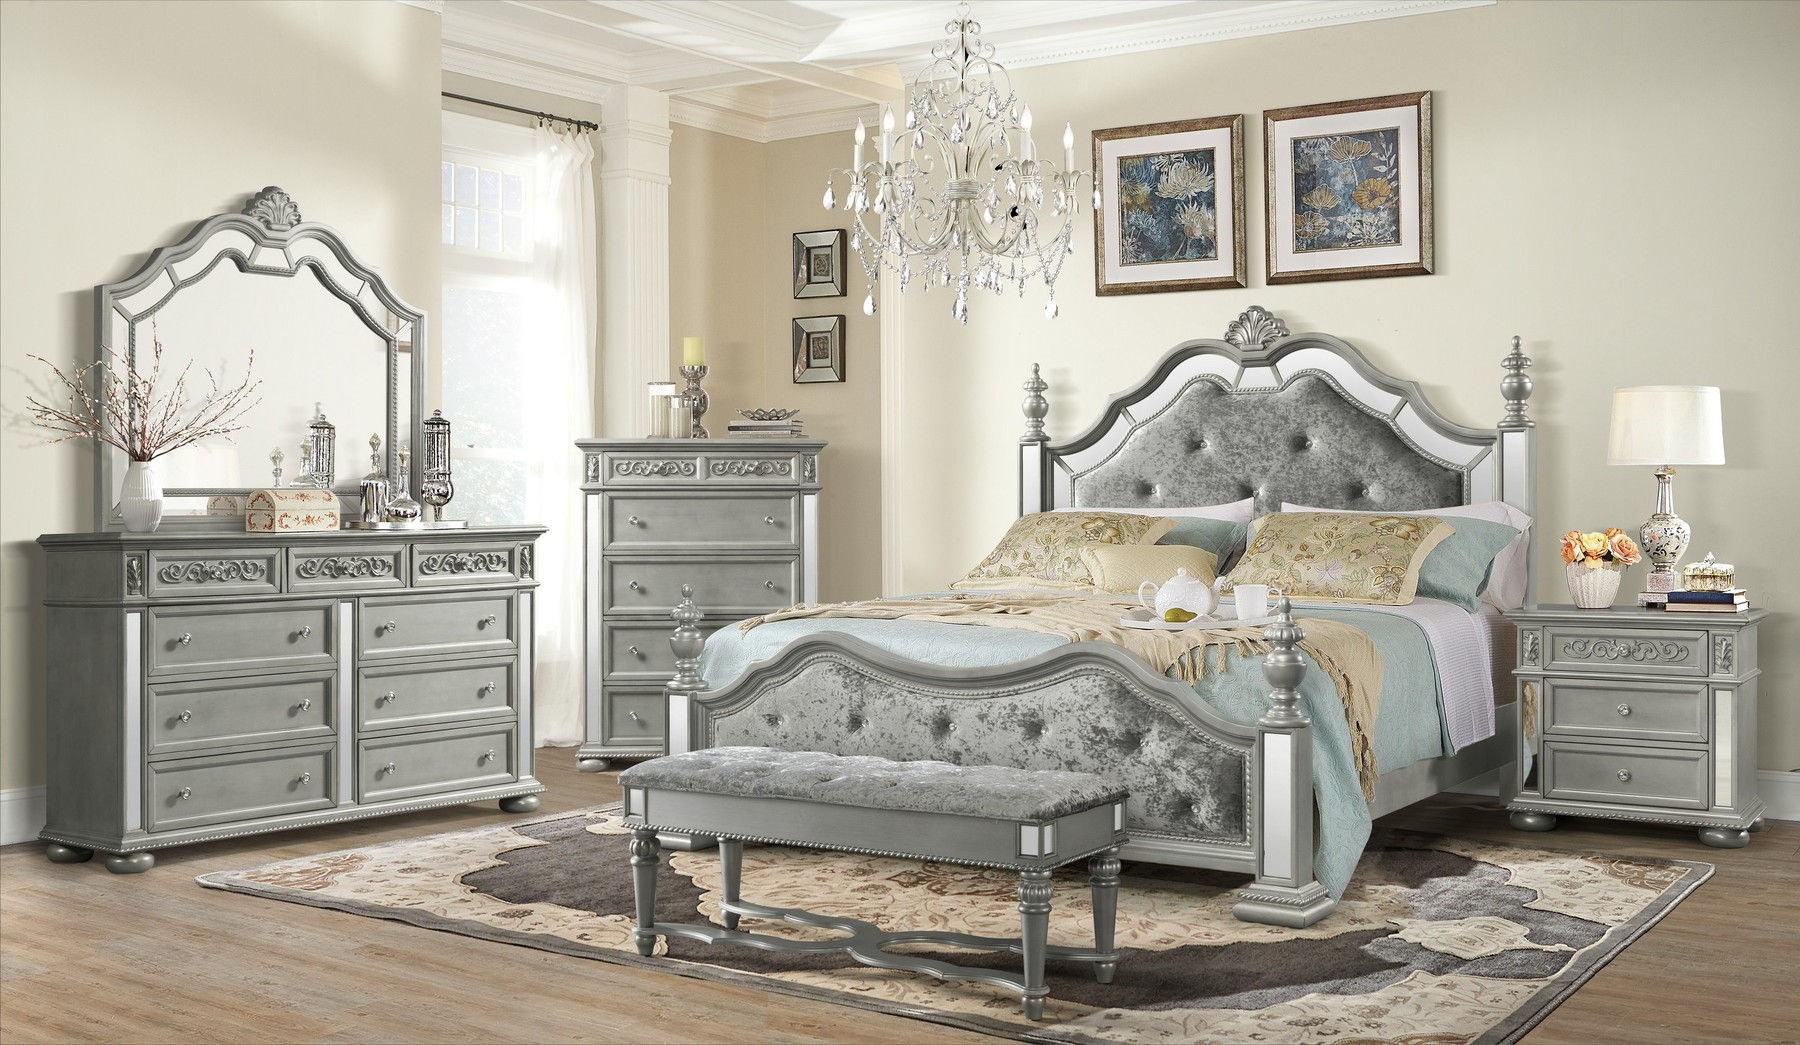 Diana Silver King Size Bed Diana Global Furniture Usa King Size Beds Comfyco Furniture